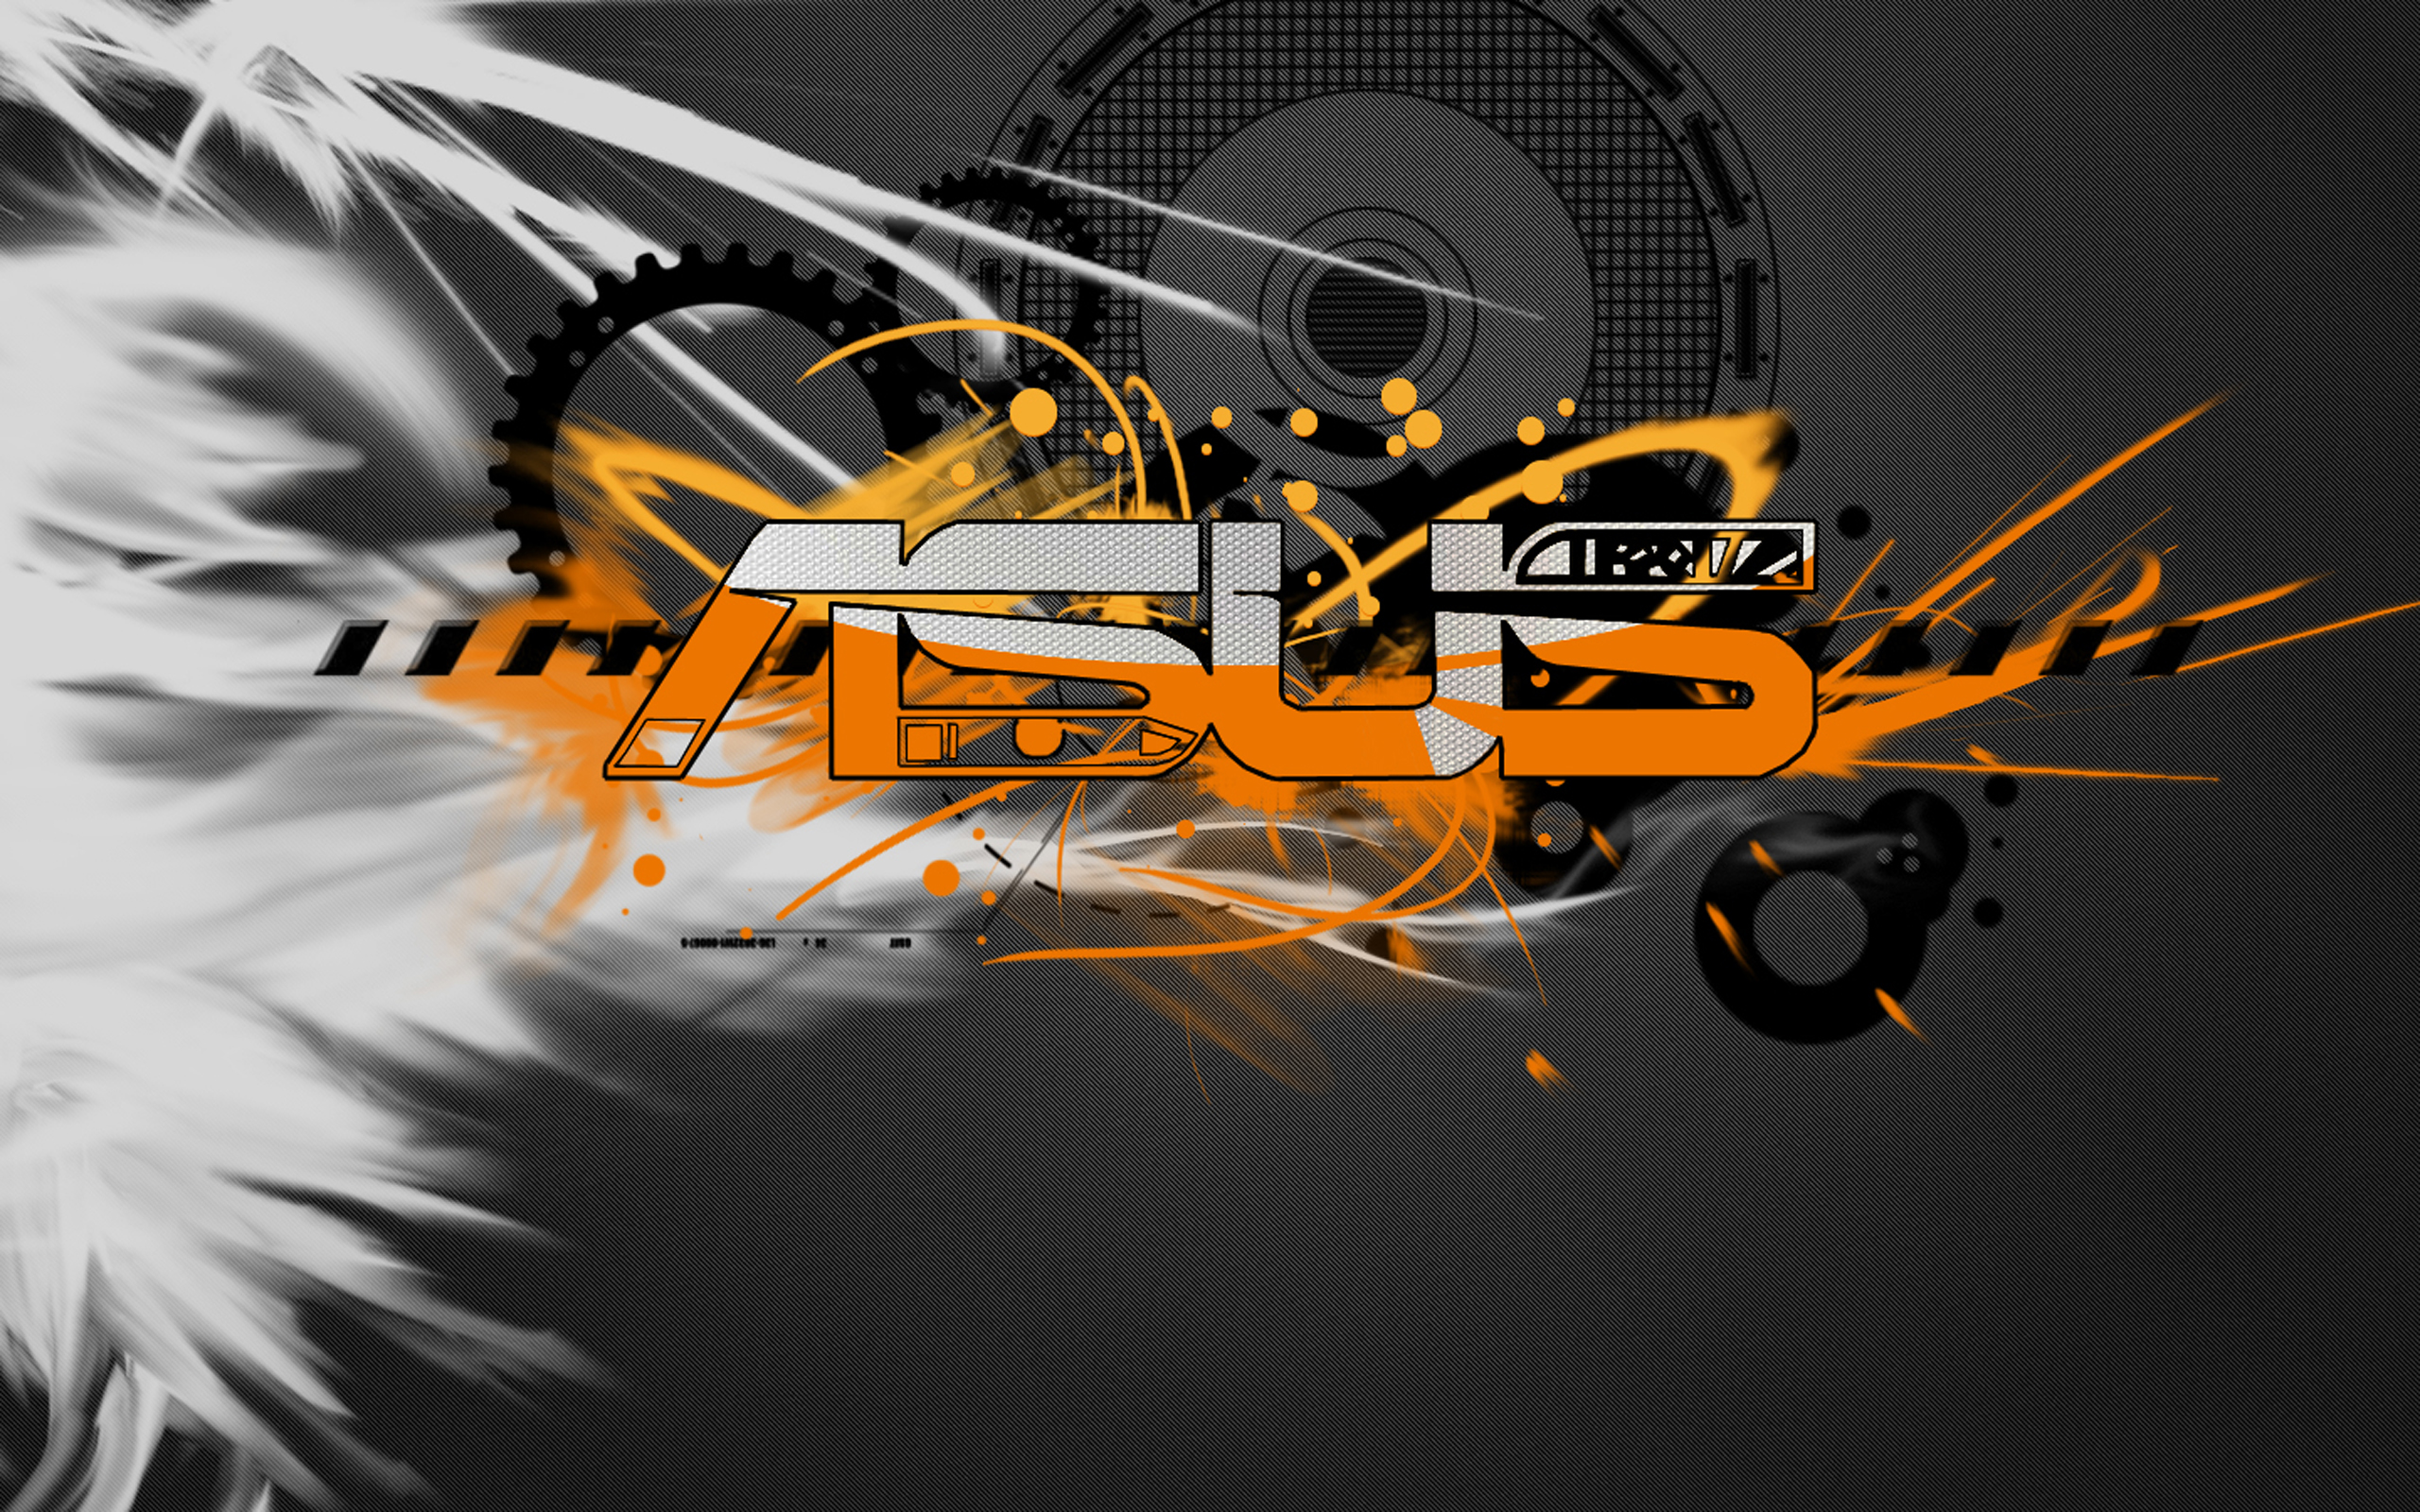 asus wallpapers desktop 3d rog backgrounds 1920 1200 2560 sfondo bhmpics close resolution awesome file